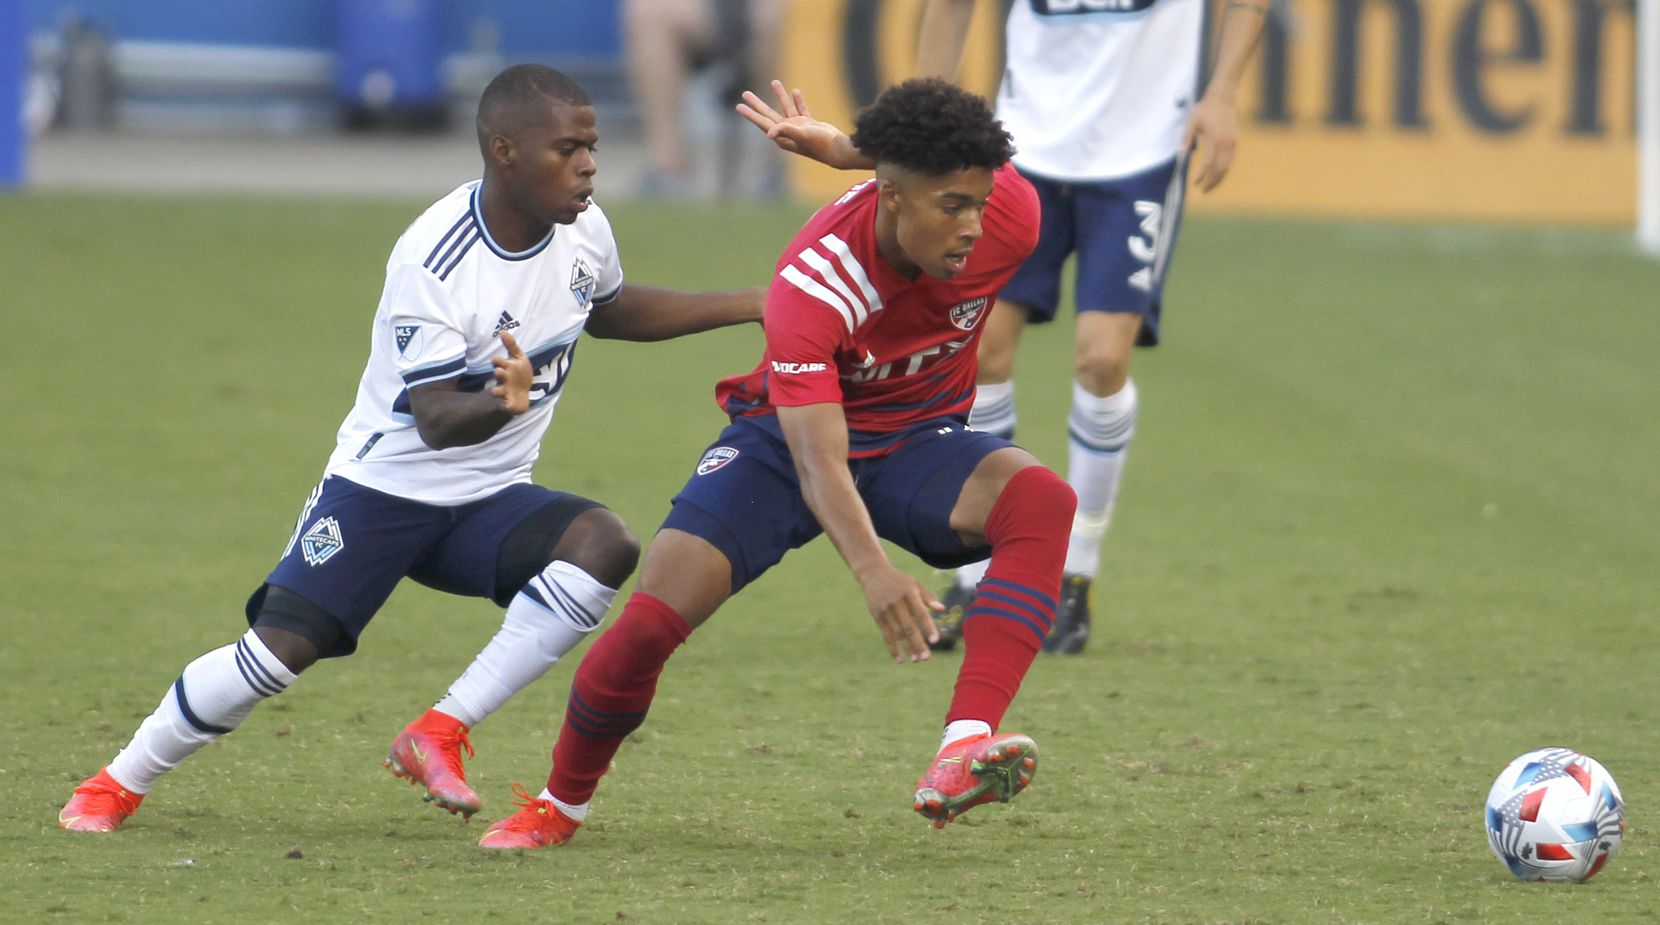 FC Dallas defender Justin Che (32), right, cuts toward the ball as Vancouver midfielder Deiber Caicedo (7) moves in during first half action. The two Major League Soccer teams played their match at Toyota Stadium in Frisco on July 4, 2021. (Steve Hamm/ Special Contributor)